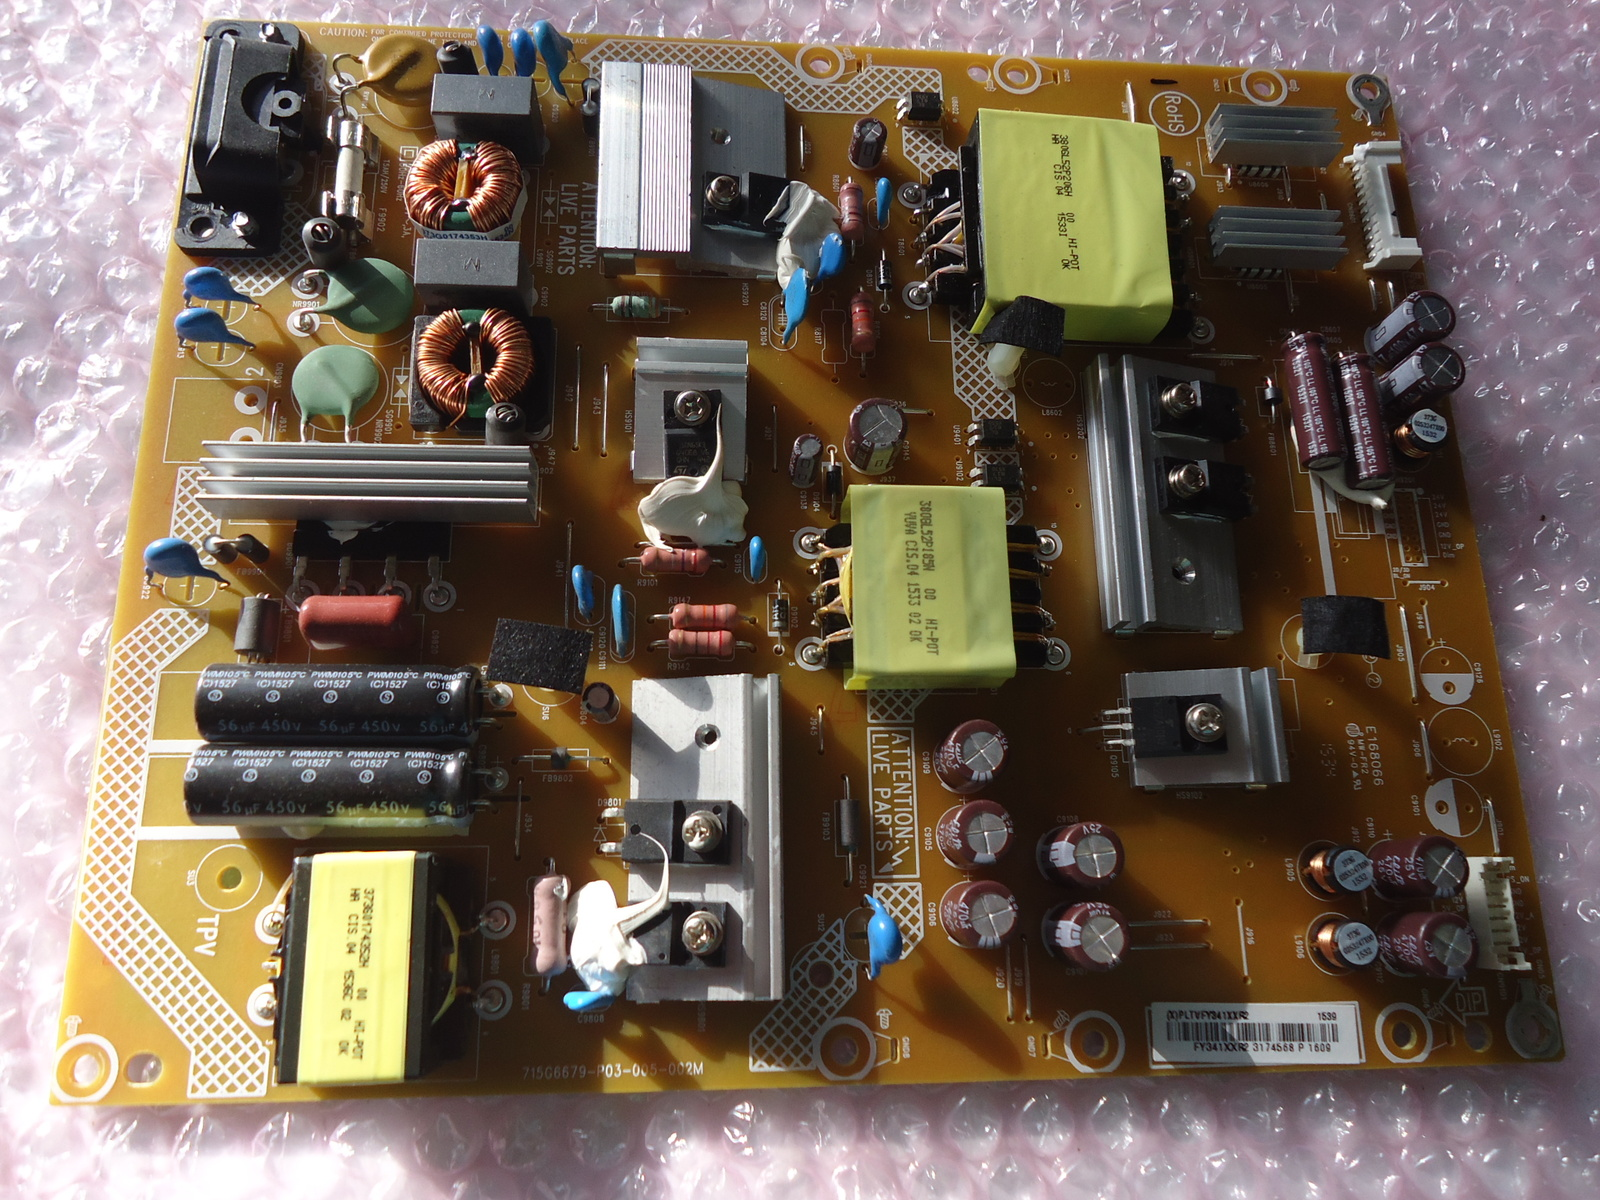 Primary image for HAIER 49E4500R POWER SUPPLY BOARD PART# 715g6679-p03-005-002m